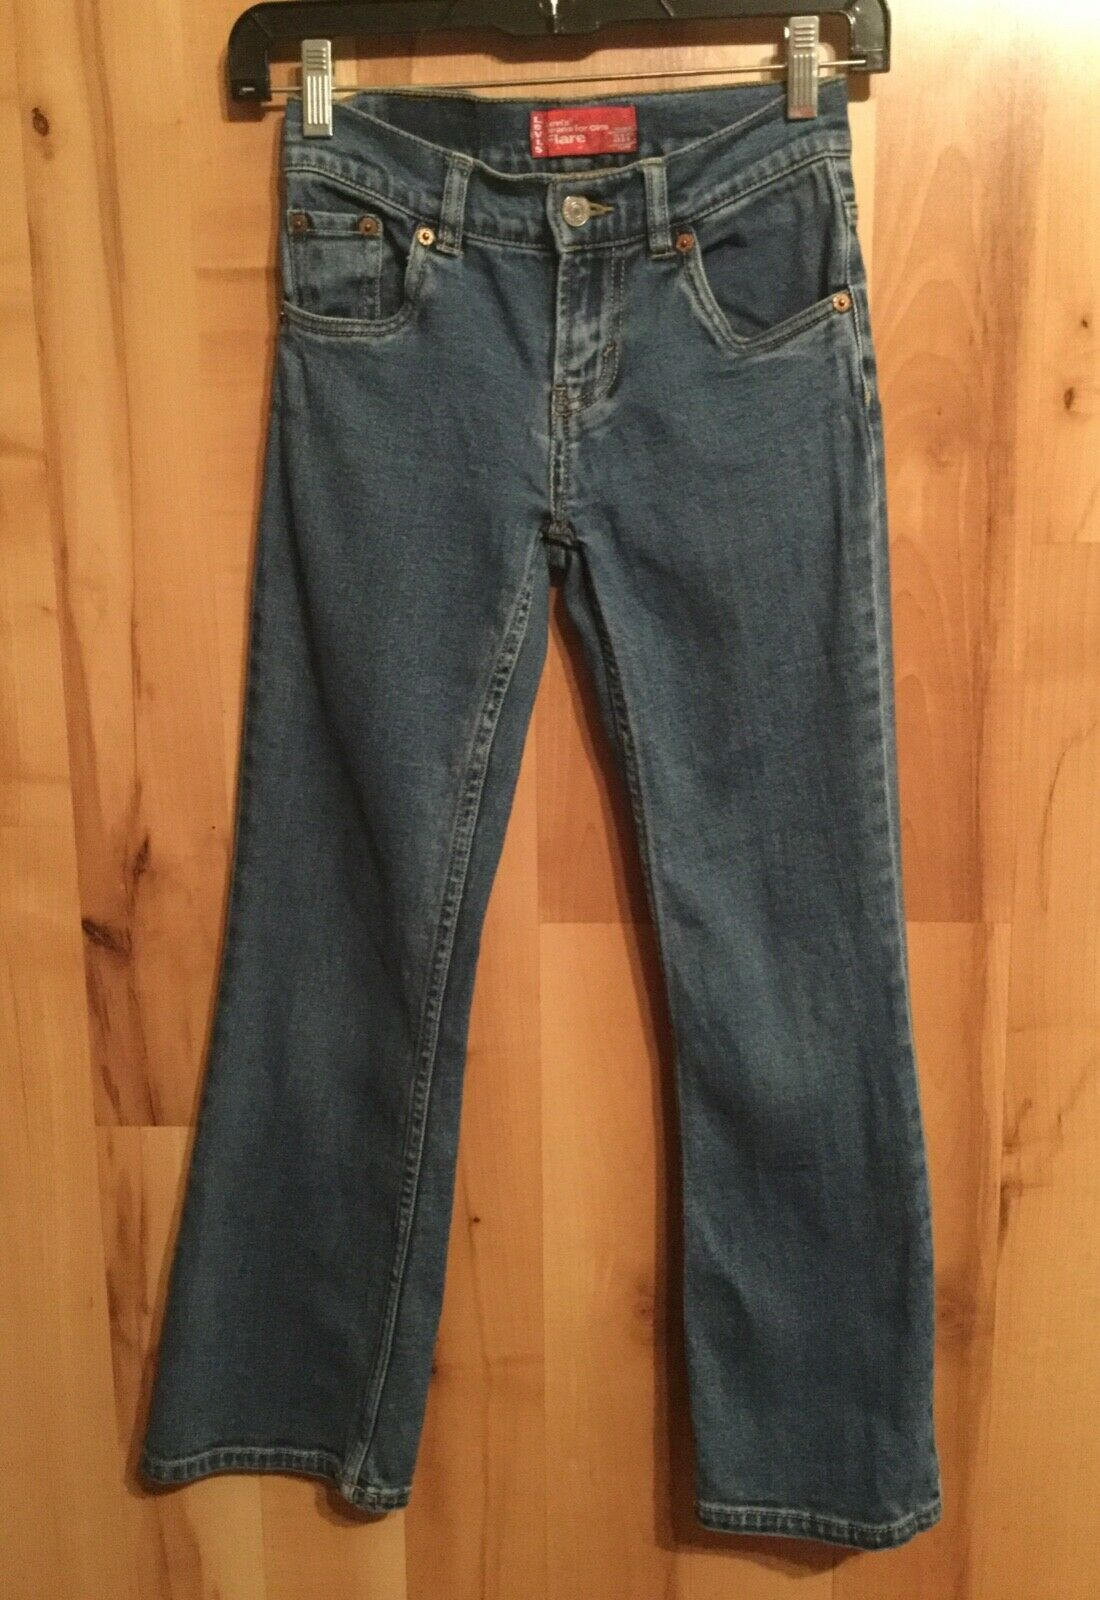 Primary image for Levi's 517 Jeans For Girls Flare Size 8 Regular Five Pocket Med Wash Stretchy